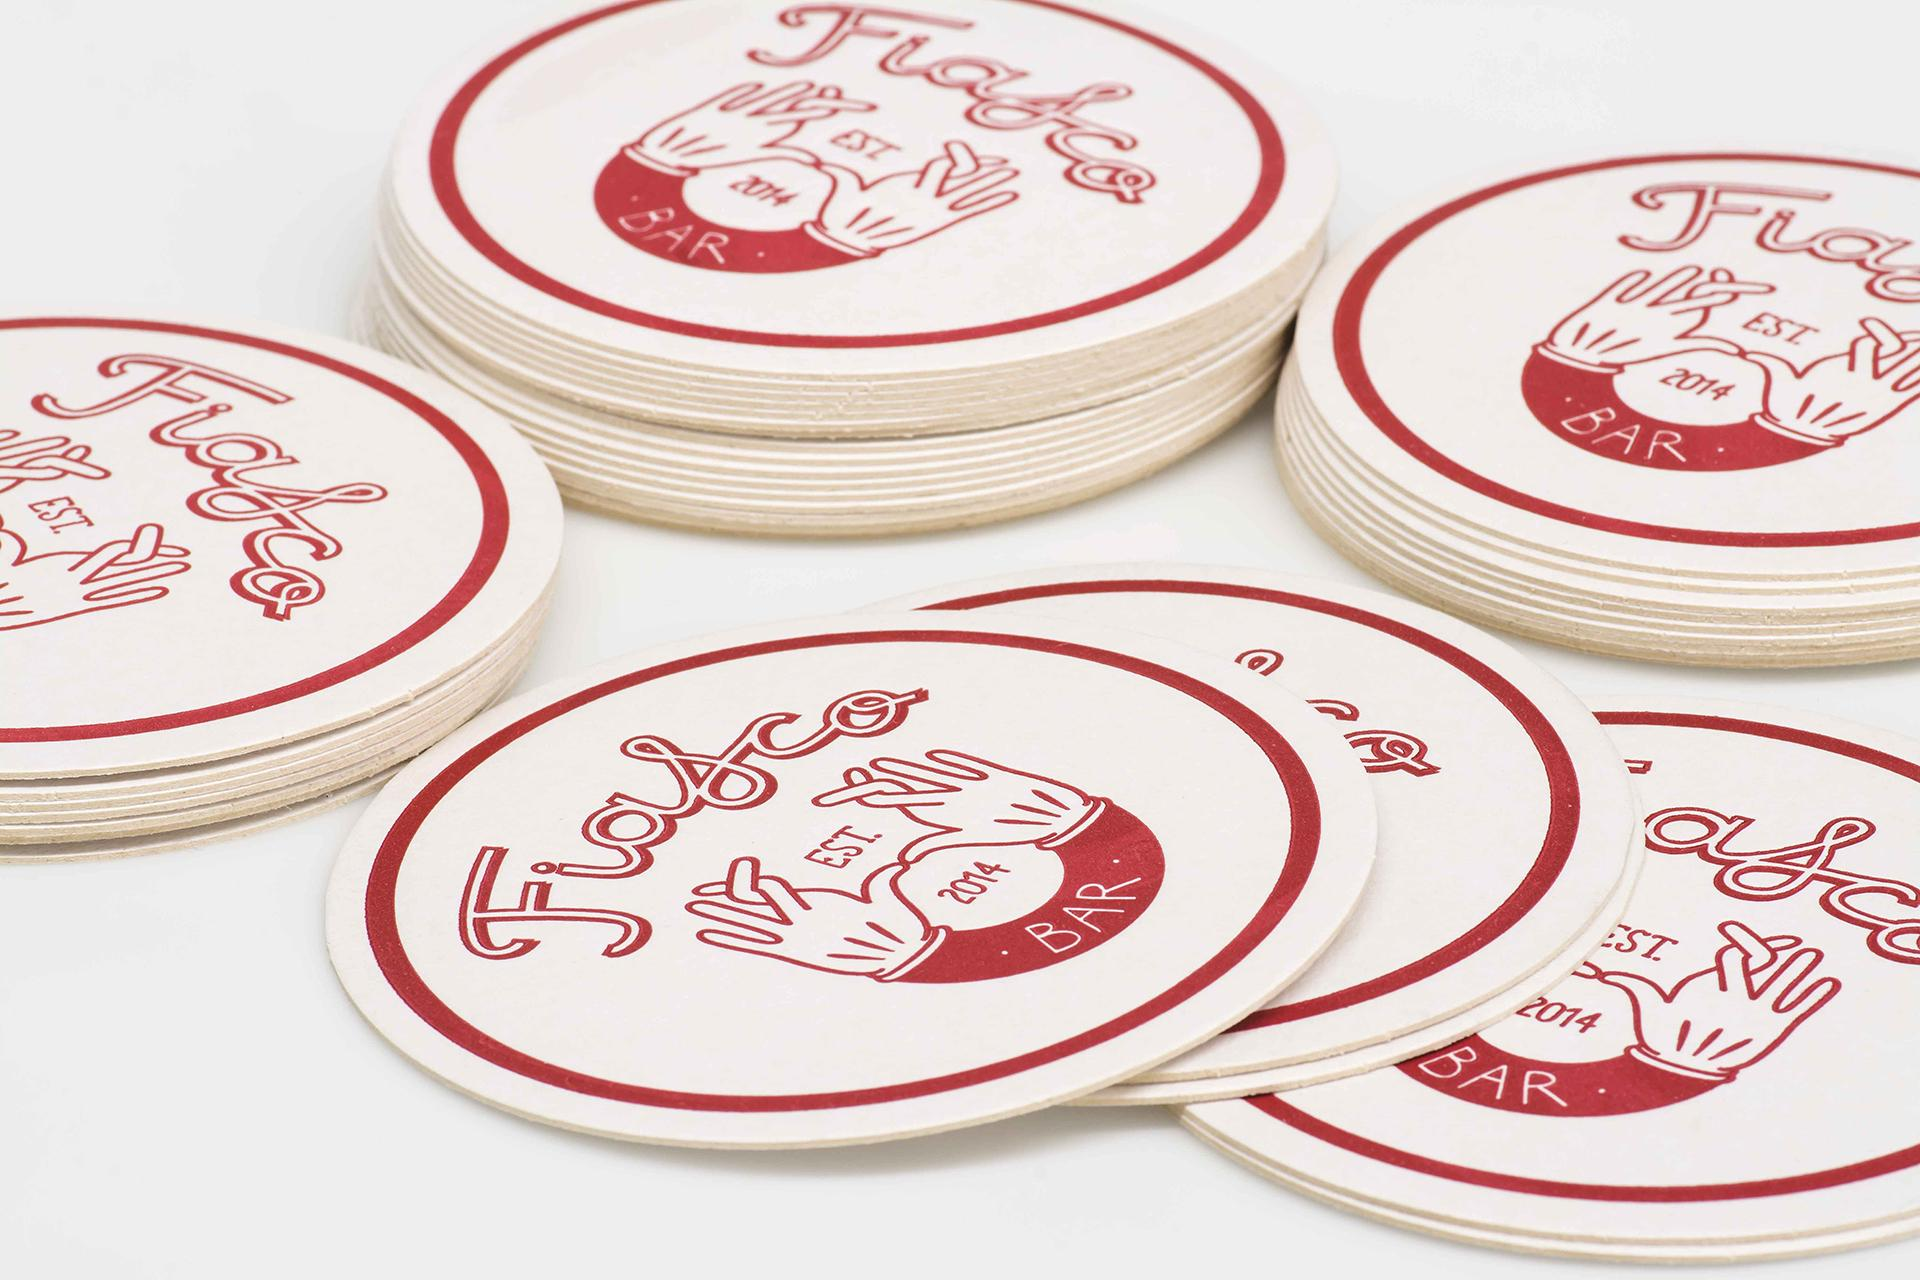 Fiasco bar coasters